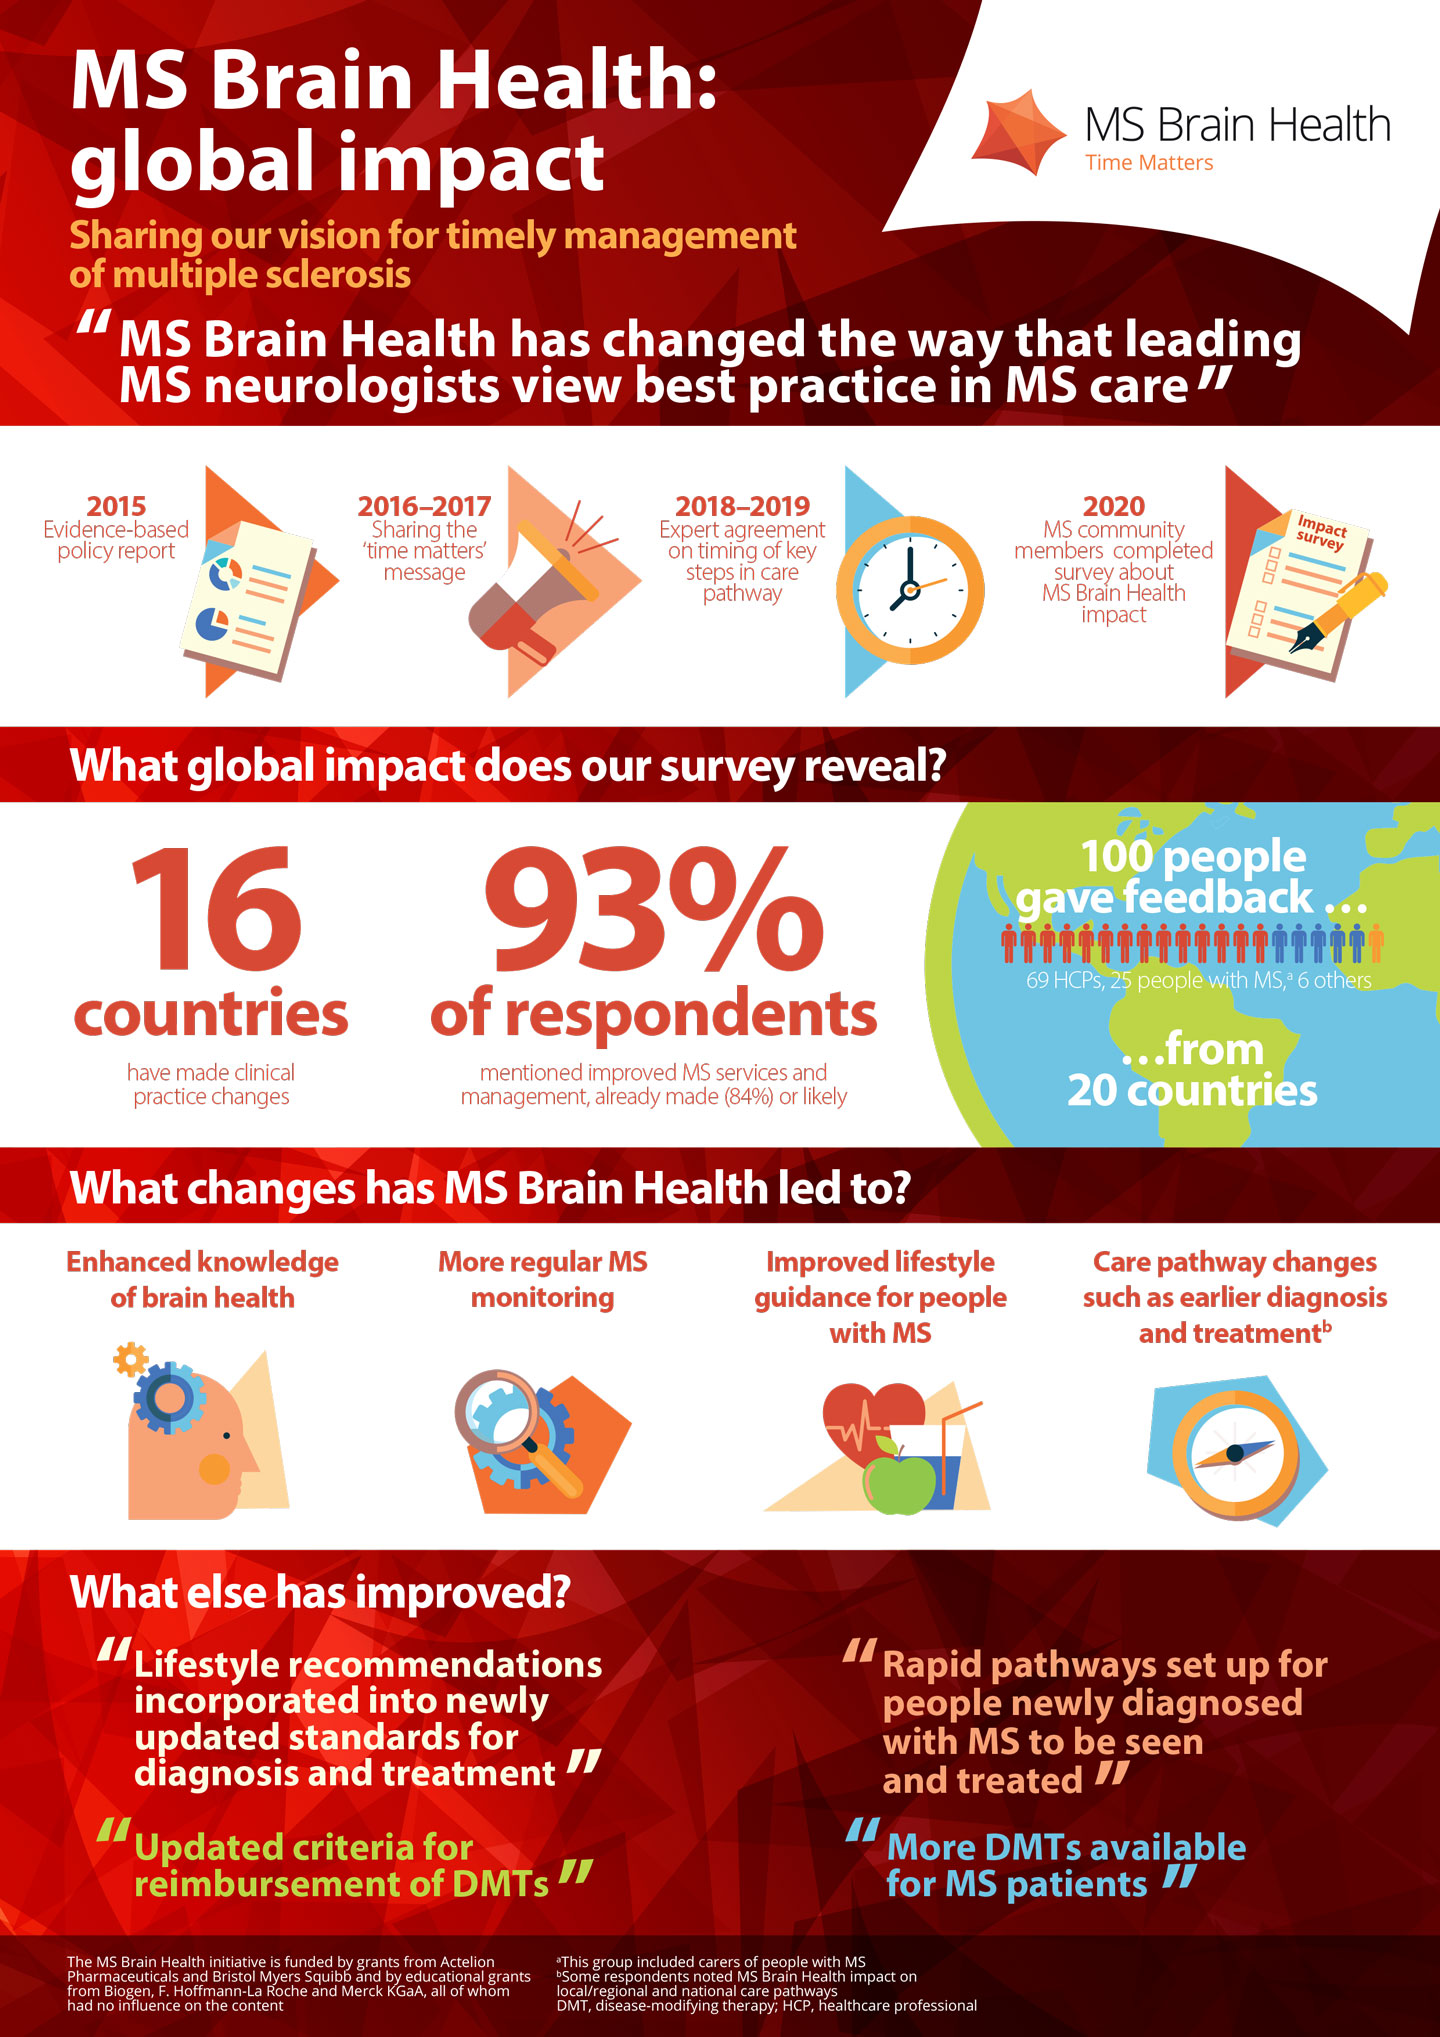 MSBH-global-impact-infographic_20May21_FINAL